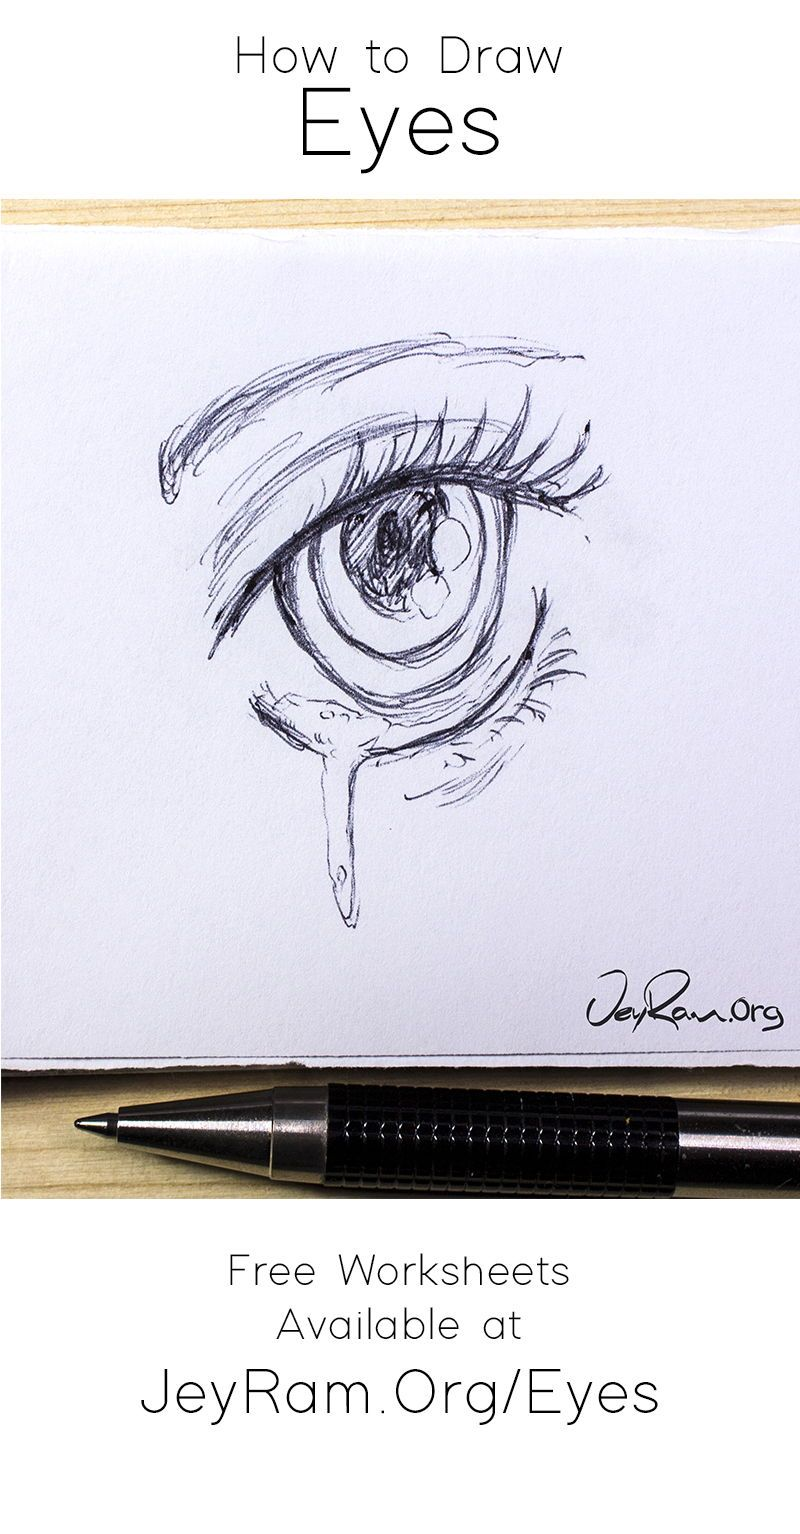 Learn how to draw the eyes using this step by step process